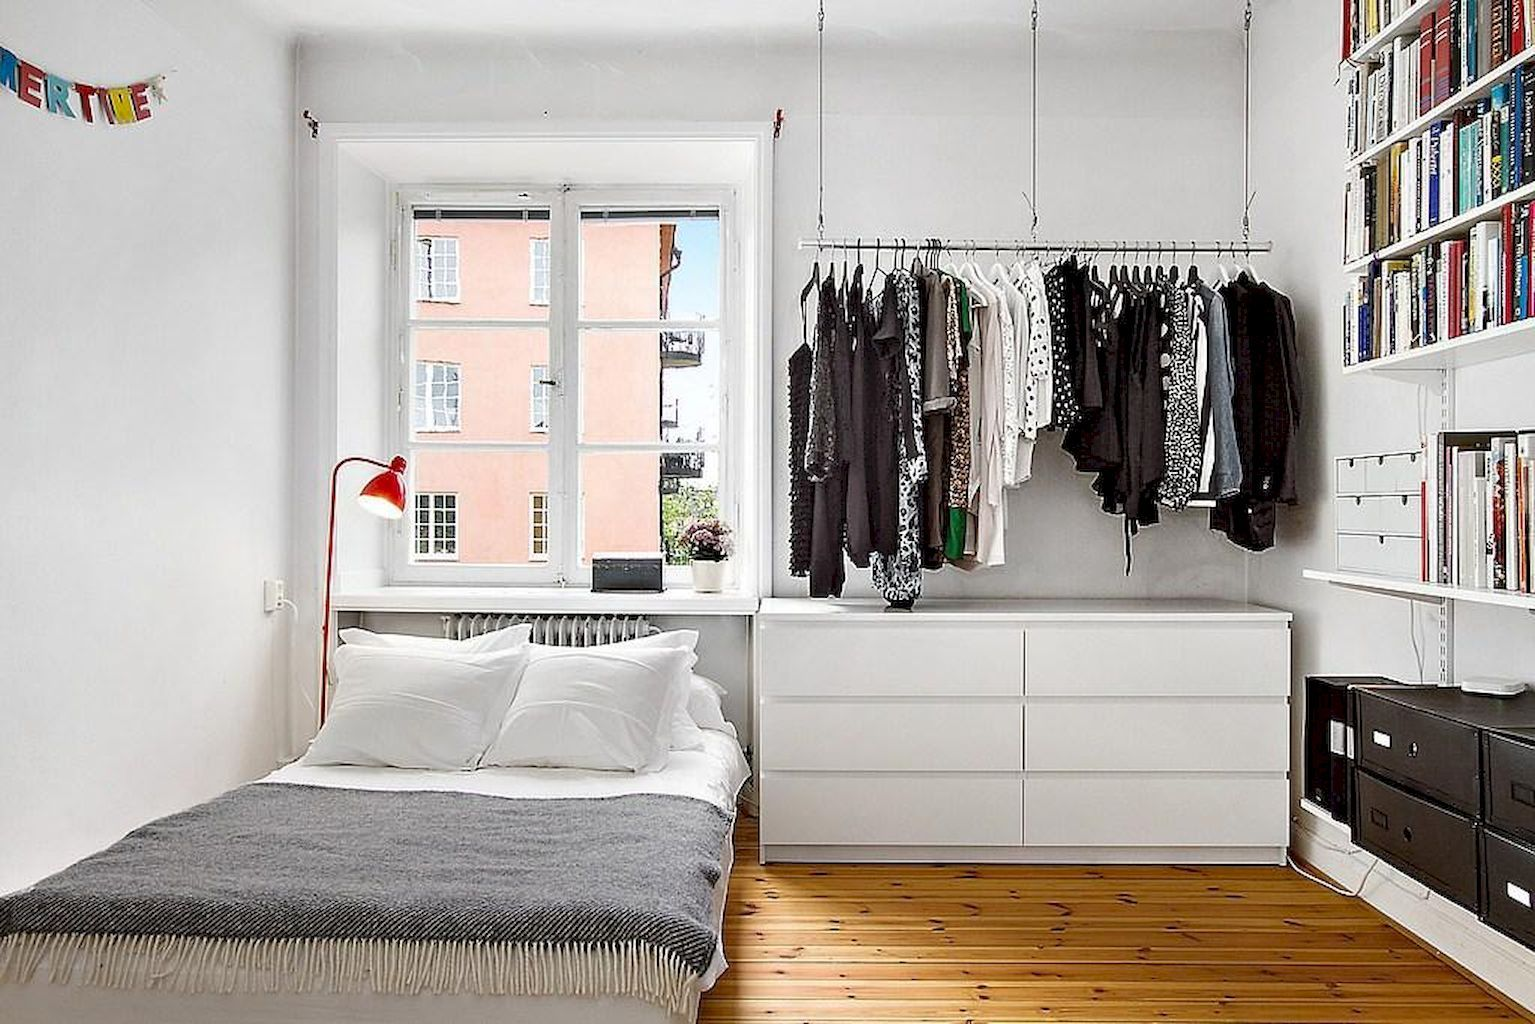 Photo of 60 Cool Small Apartment Decorating Ideas on A Budget – HomeSpecially